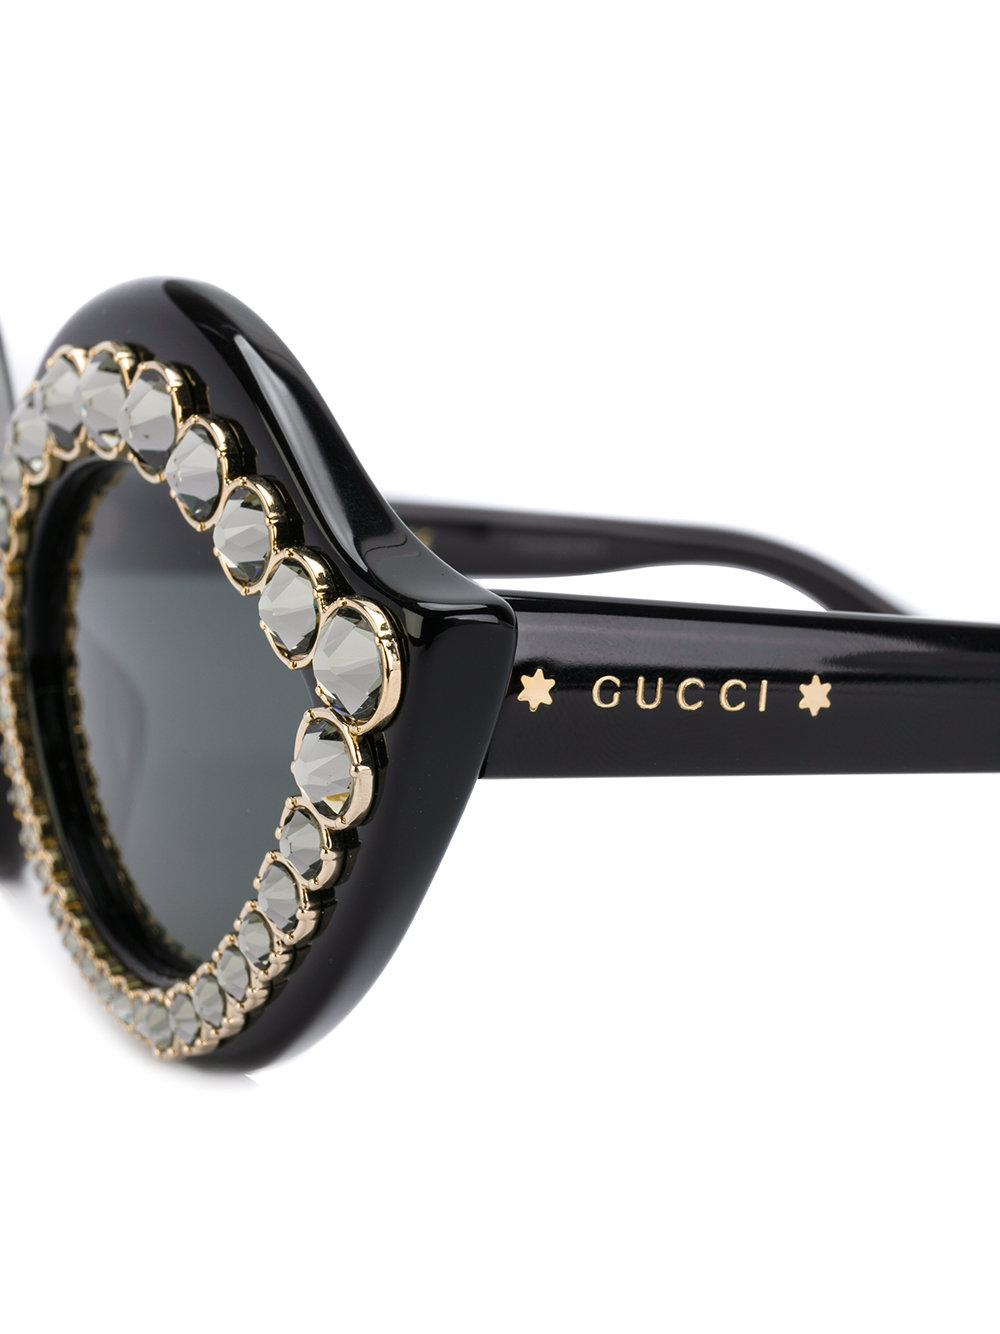 942b7c5dd89 Lyst - Gucci Crystal-embellished Sunglasses in Black